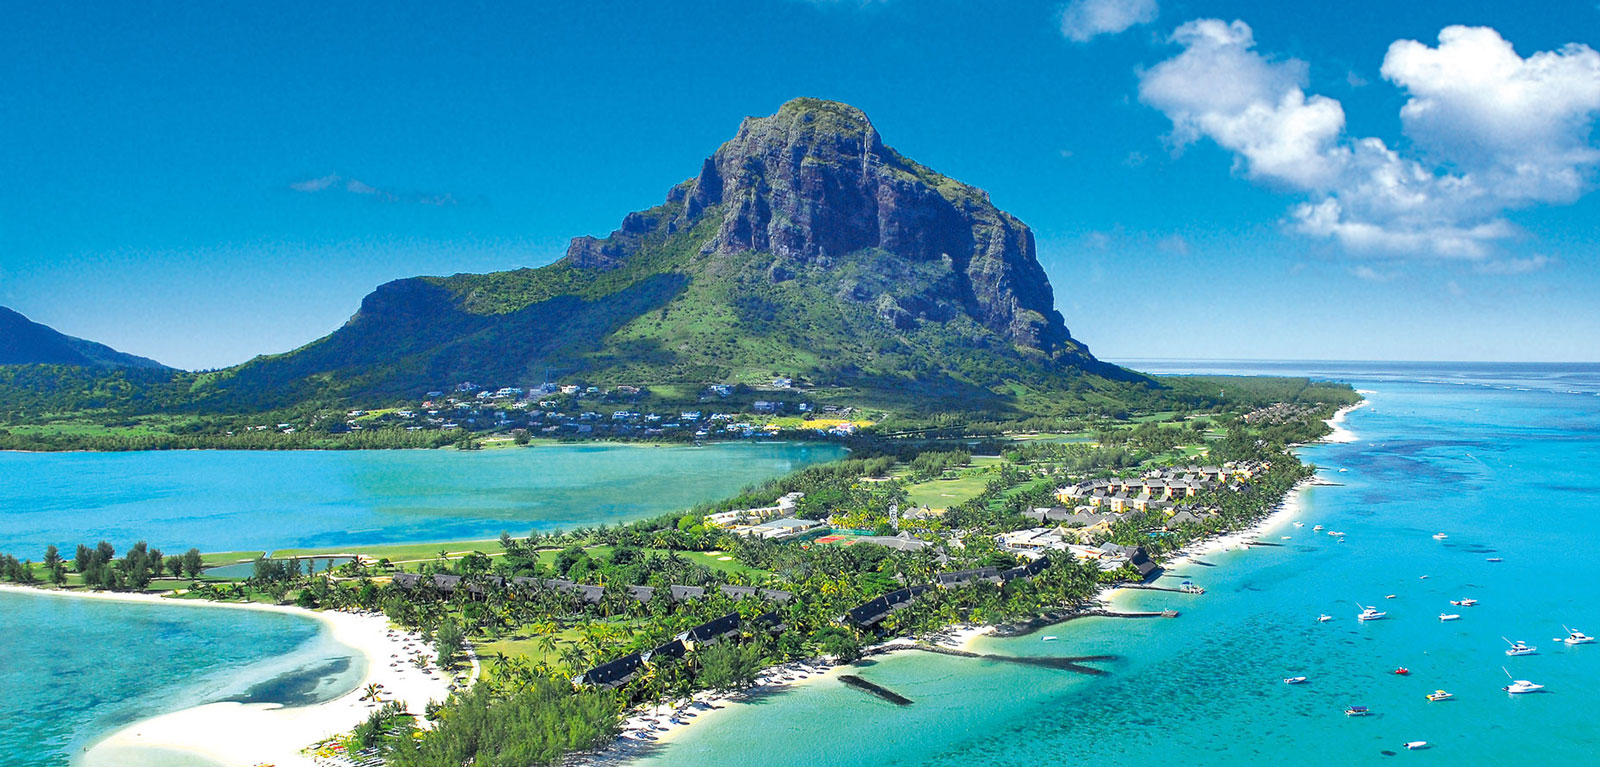 mauritius island - The Dove Villa Location